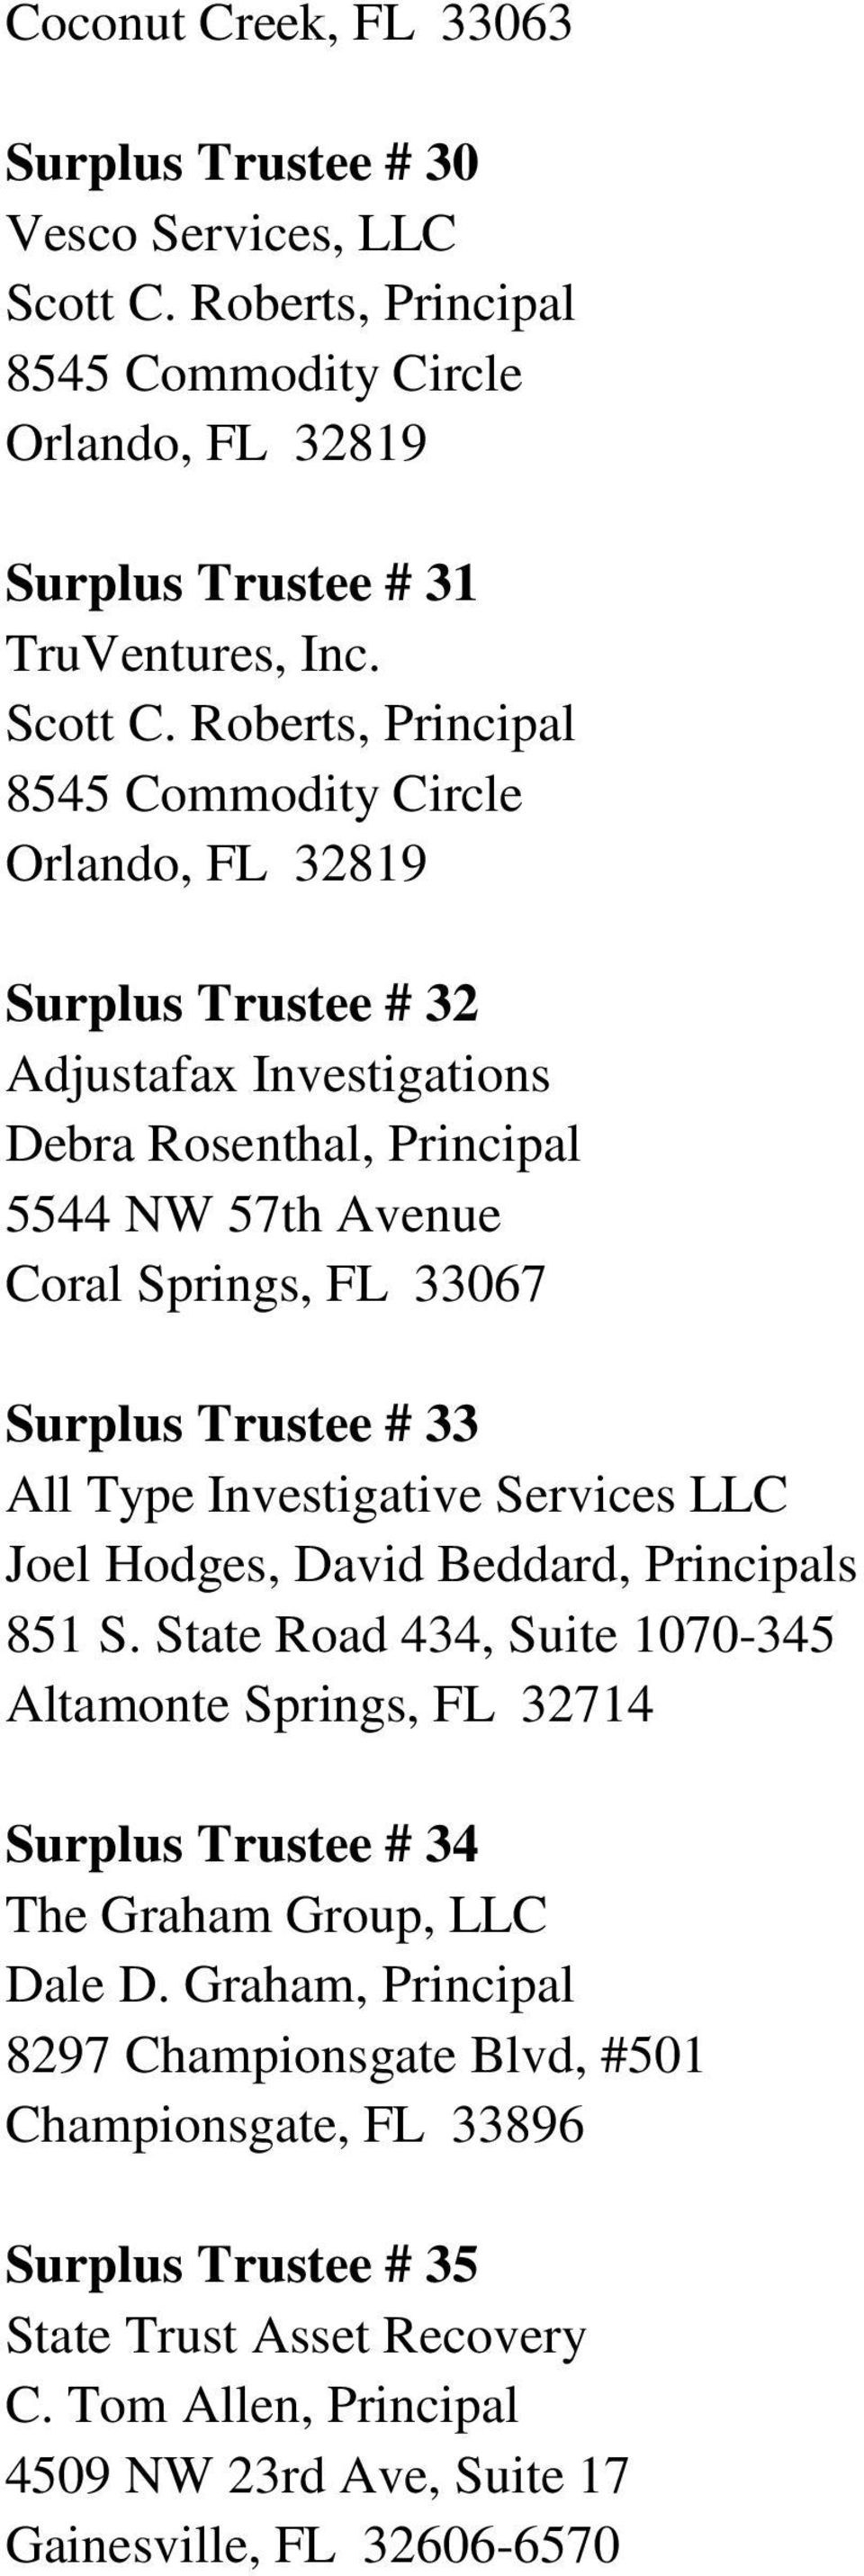 Roberts, Principal 8545 Commodity Circle Orlando, FL 32819 Surplus Trustee # 32 Adjustafax Investigations Debra Rosenthal, Principal 5544 NW 57th Avenue Coral Springs, FL 33067 Surplus